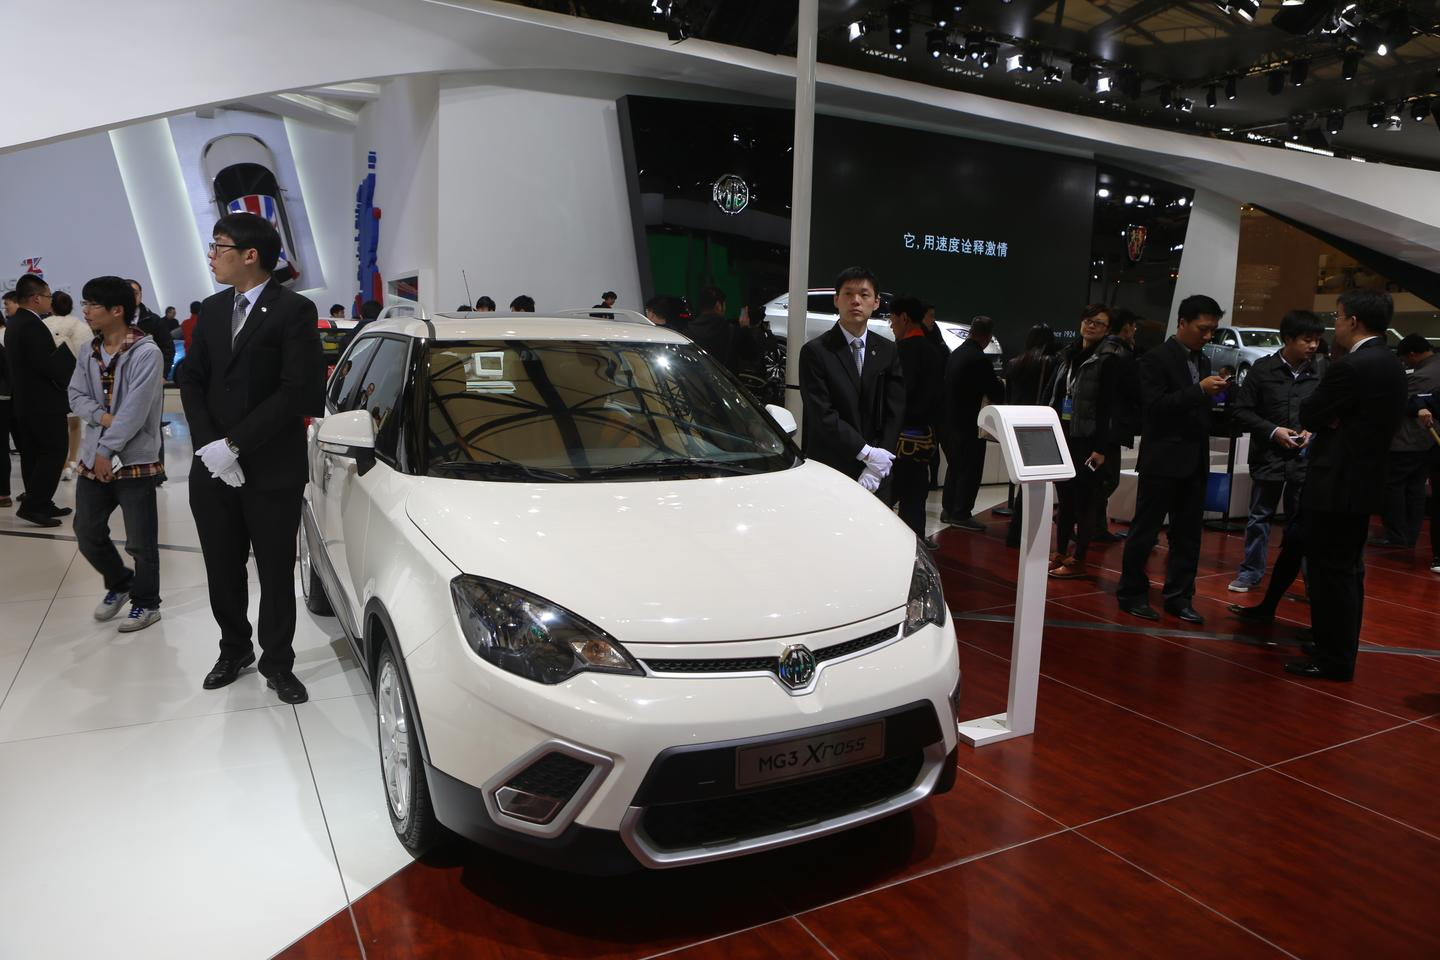 MG3 unveiled at the Shanghai Auto Show is targeted at the young, urban demographic (Photo: Gizmag.com)